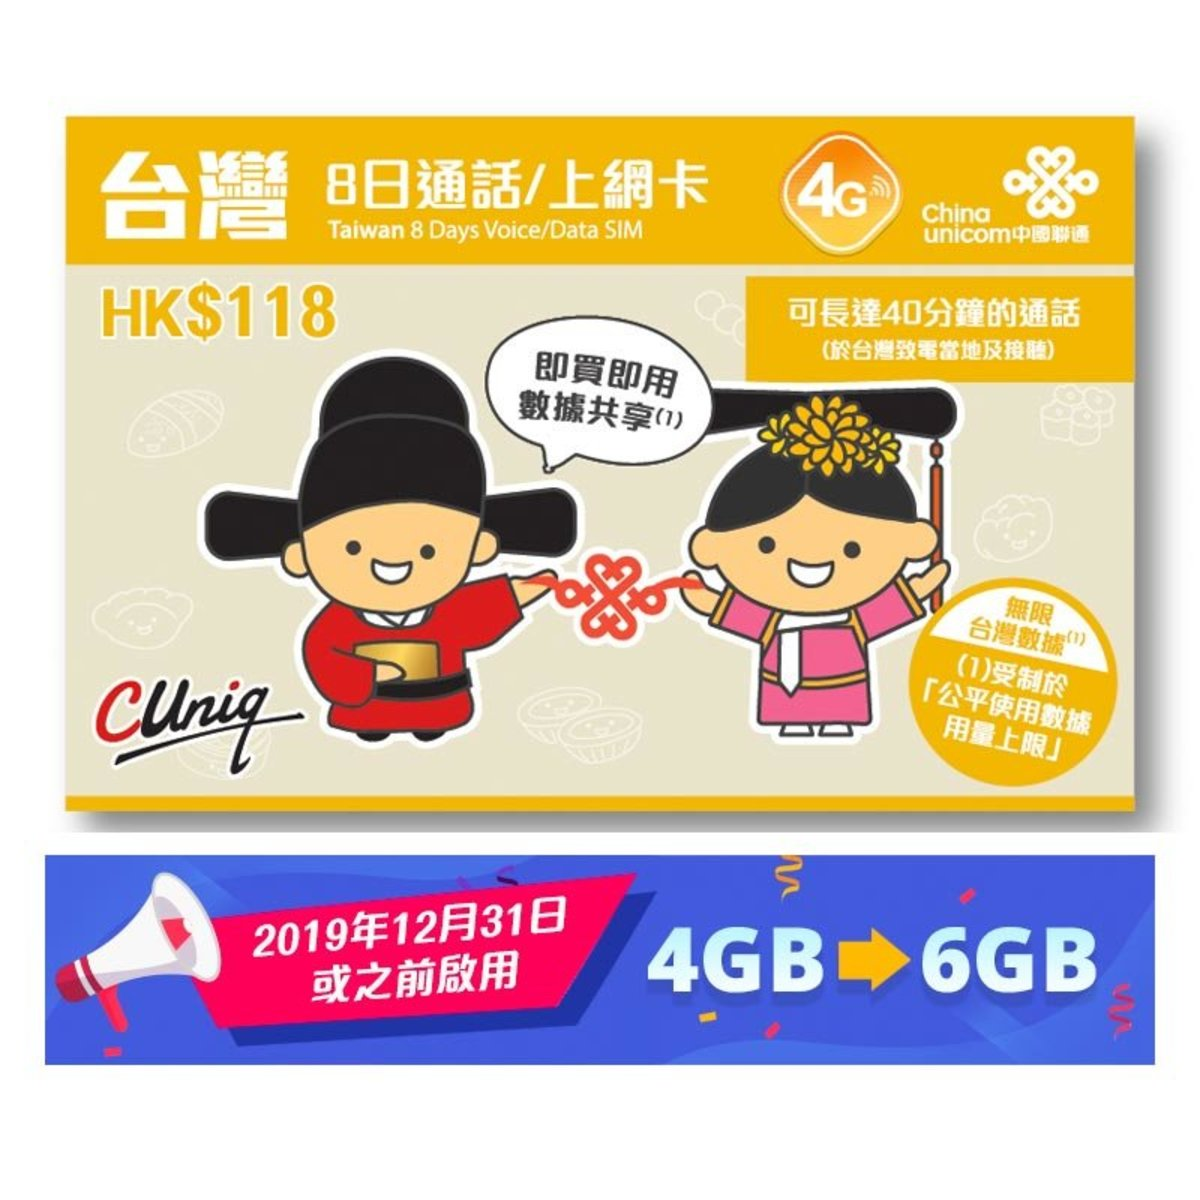 (Voice Ver.)8days Taiwan 4G/3G Unlimited Data Sim Card - Expiry Date:30/9/2020